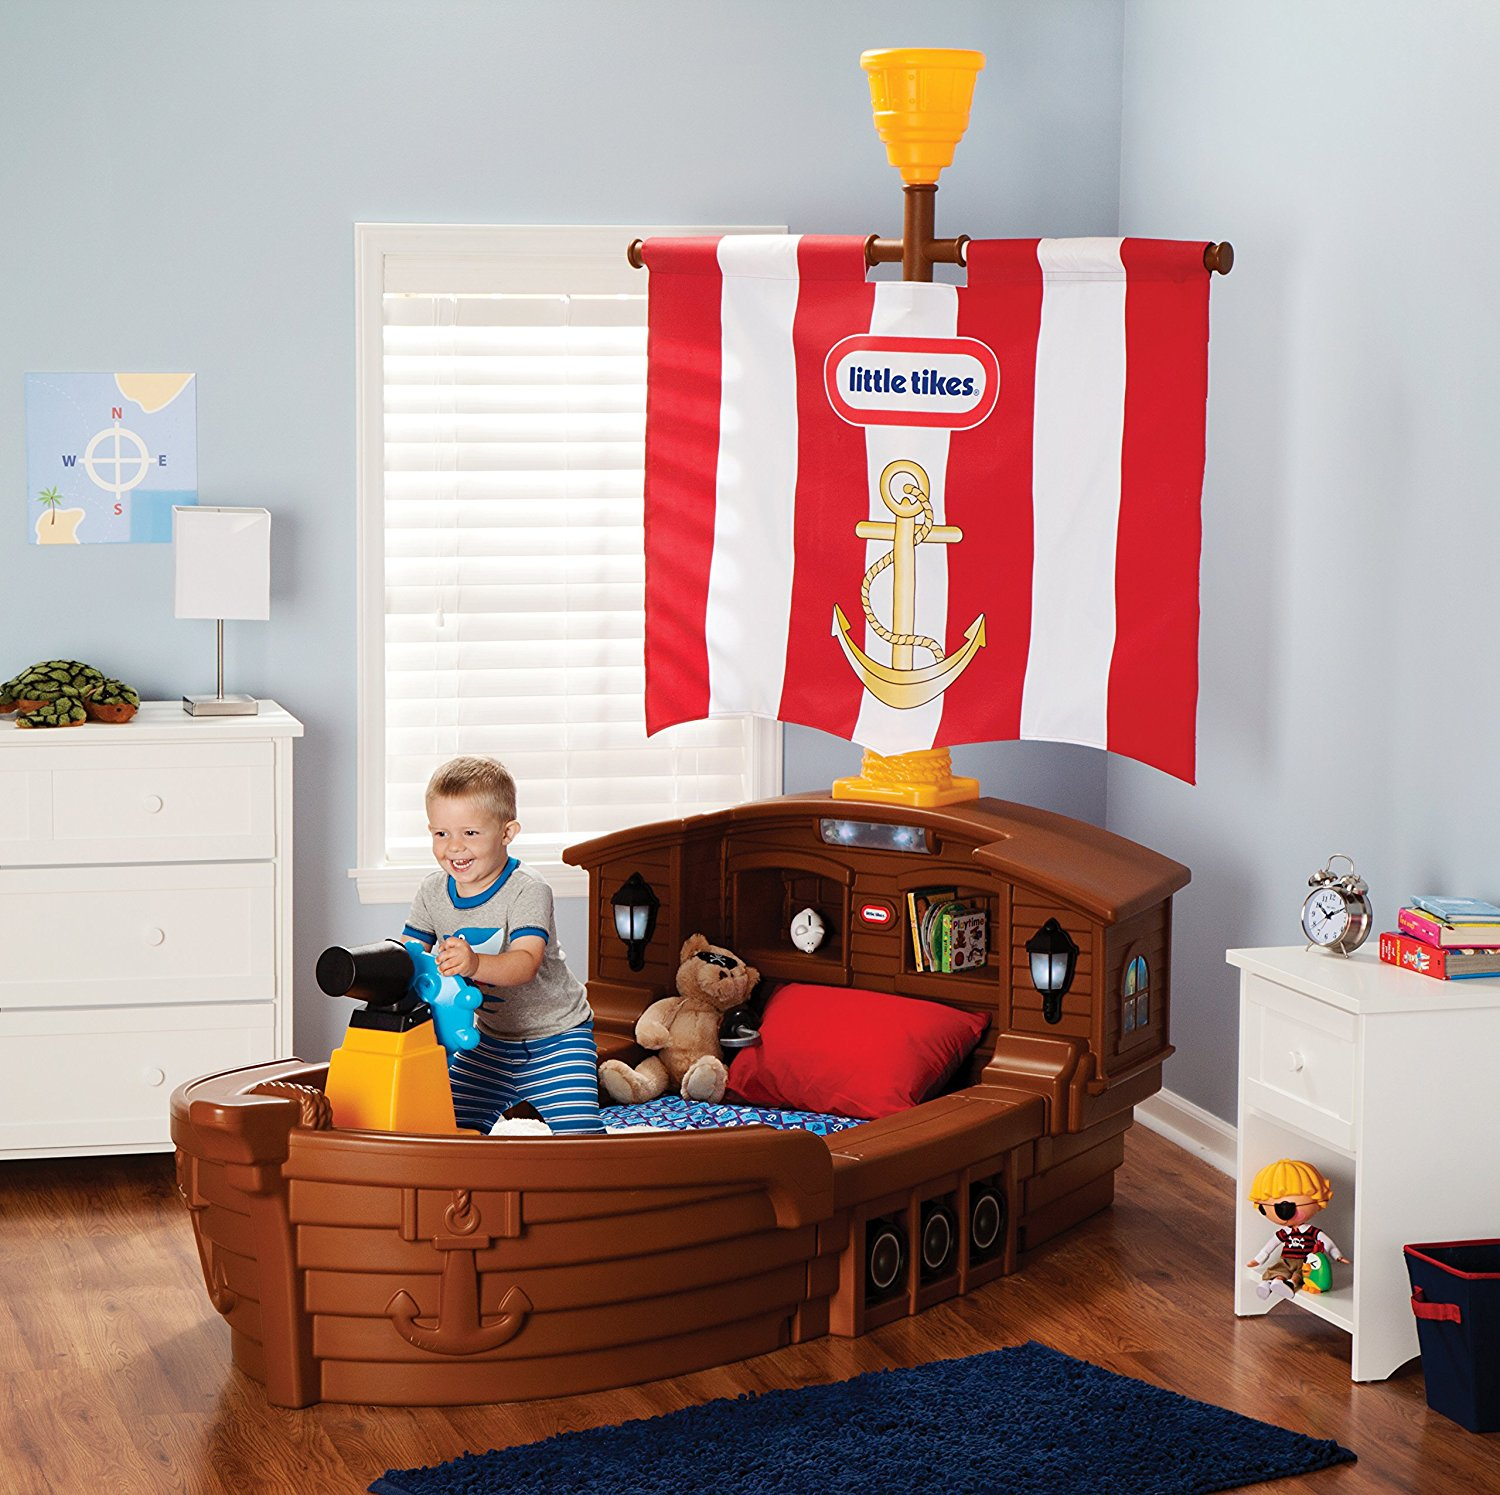 Pirate Ship Toddler Bed Review